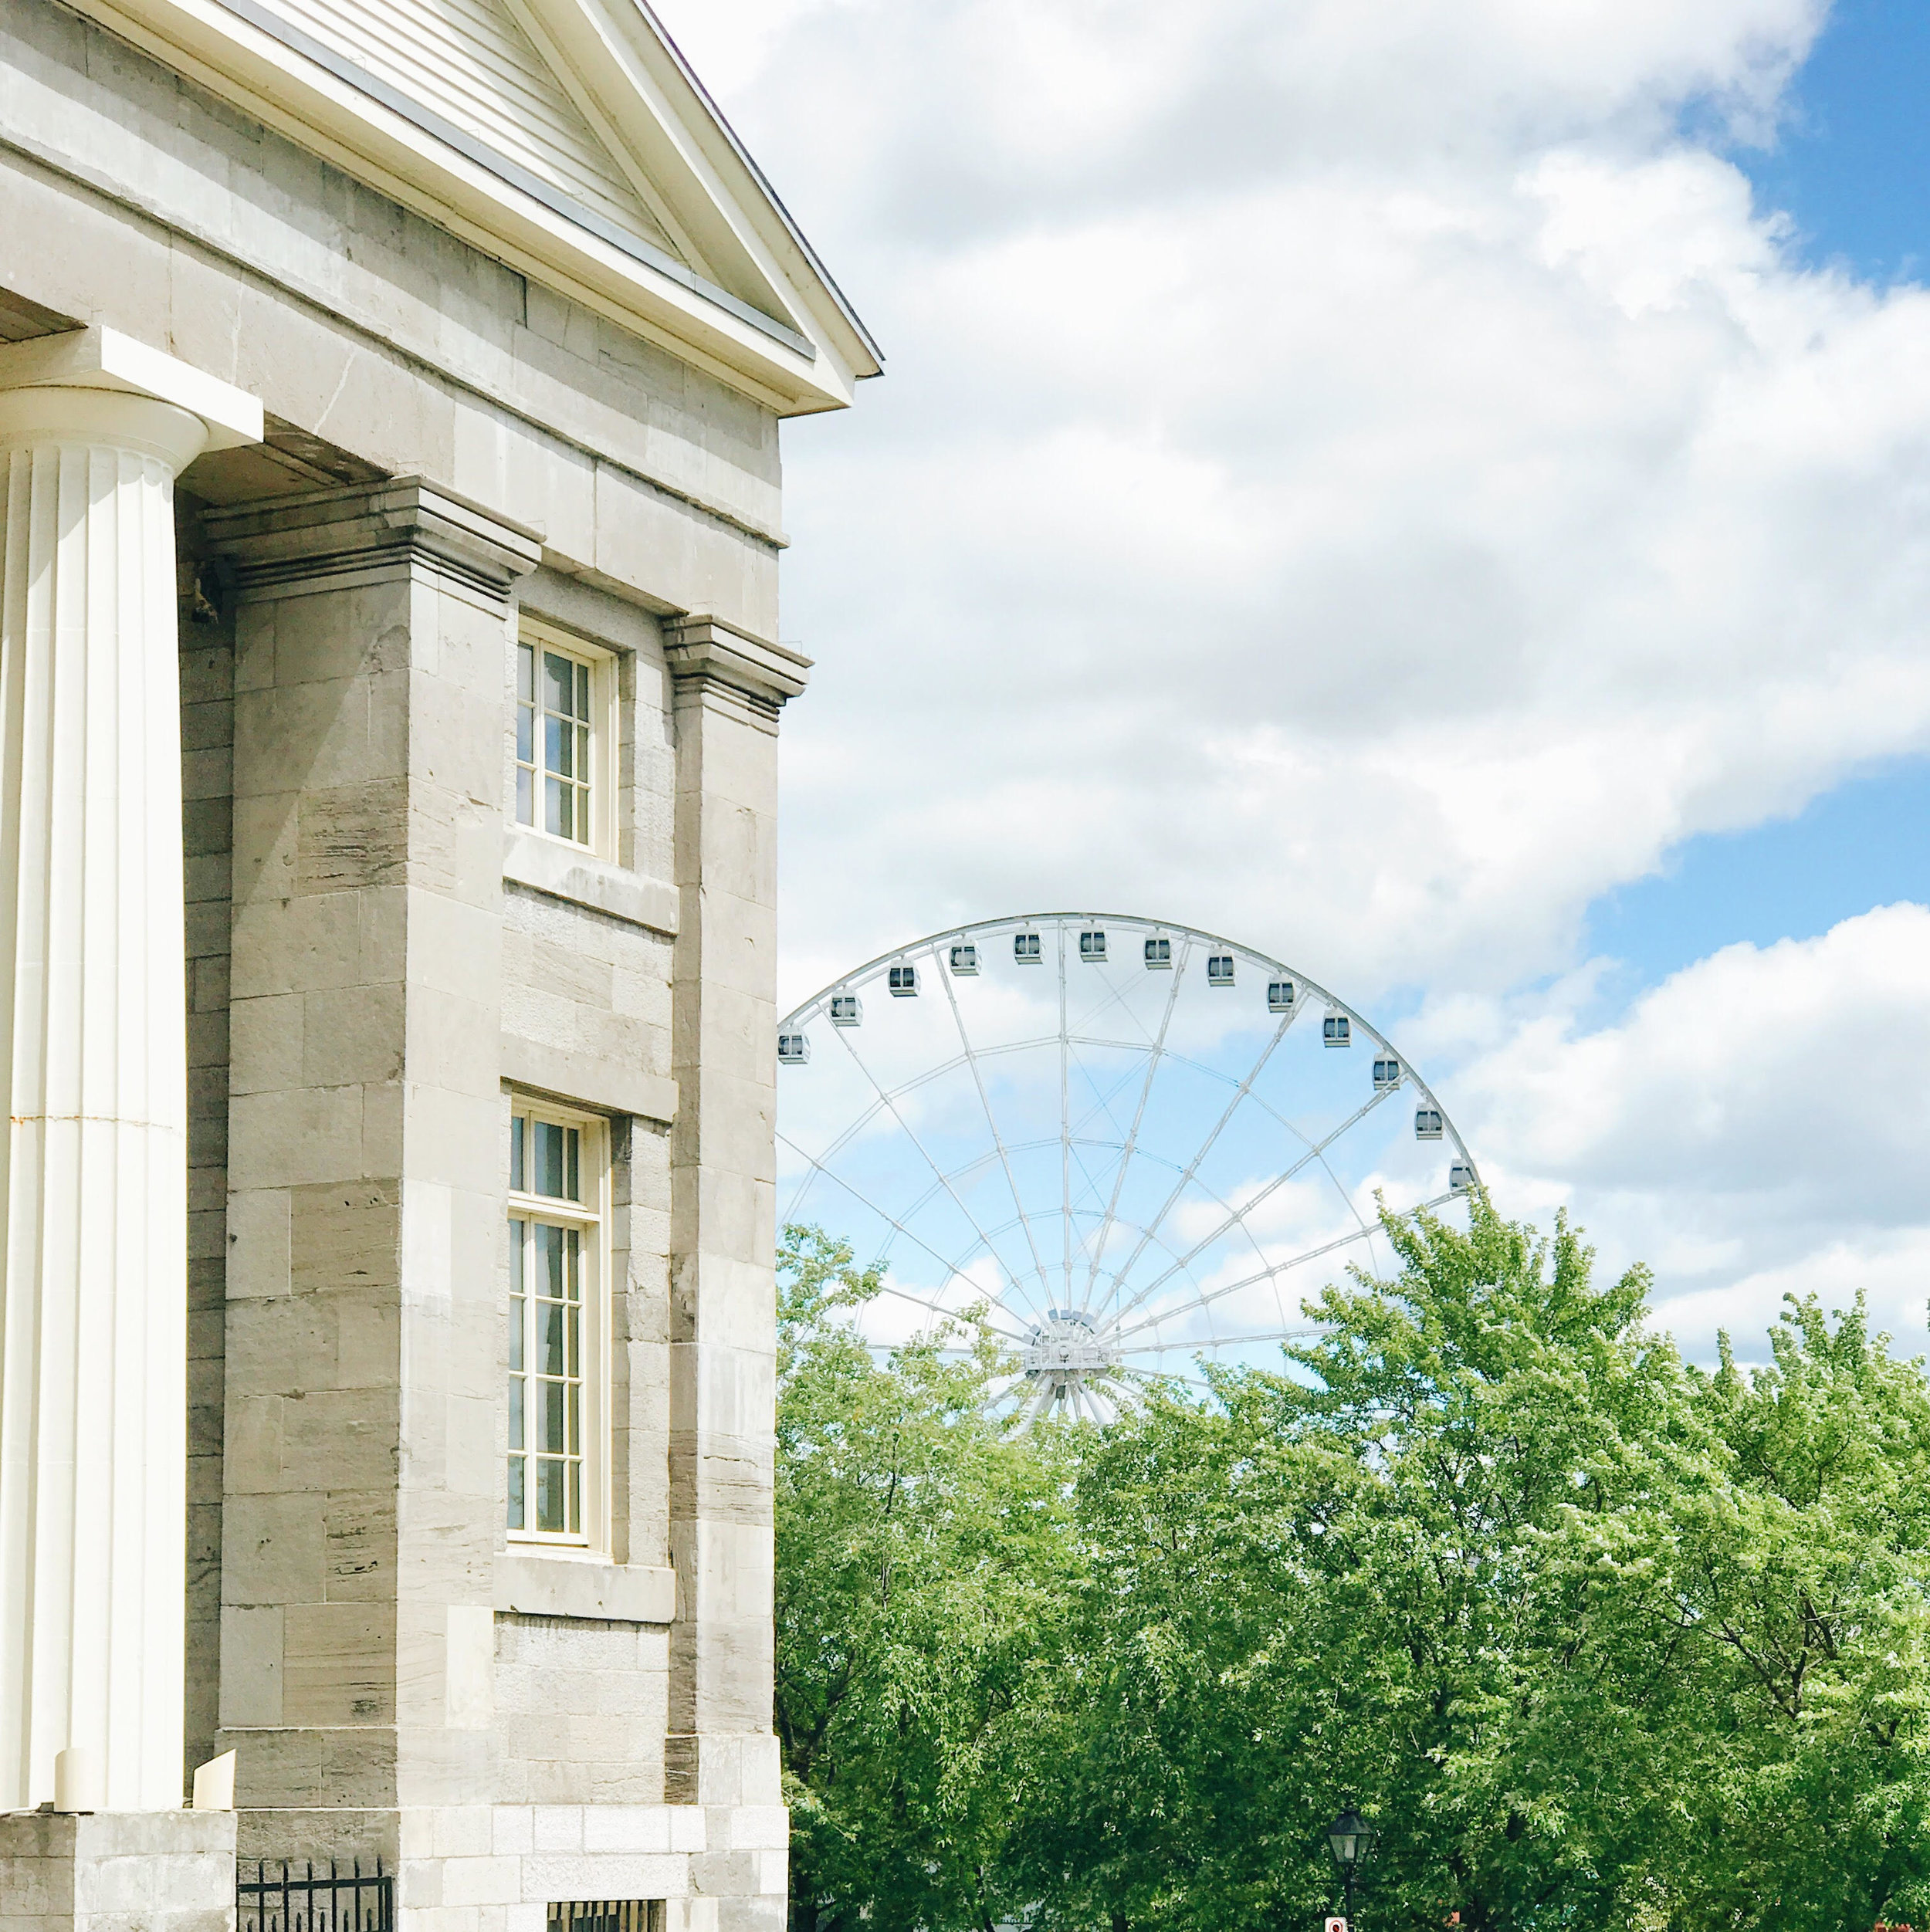 Observation Wheel, Nyla Free Designs Travels Montreal, Weekend Guide, Travel Tips, Canada, Calgary Interior Designer